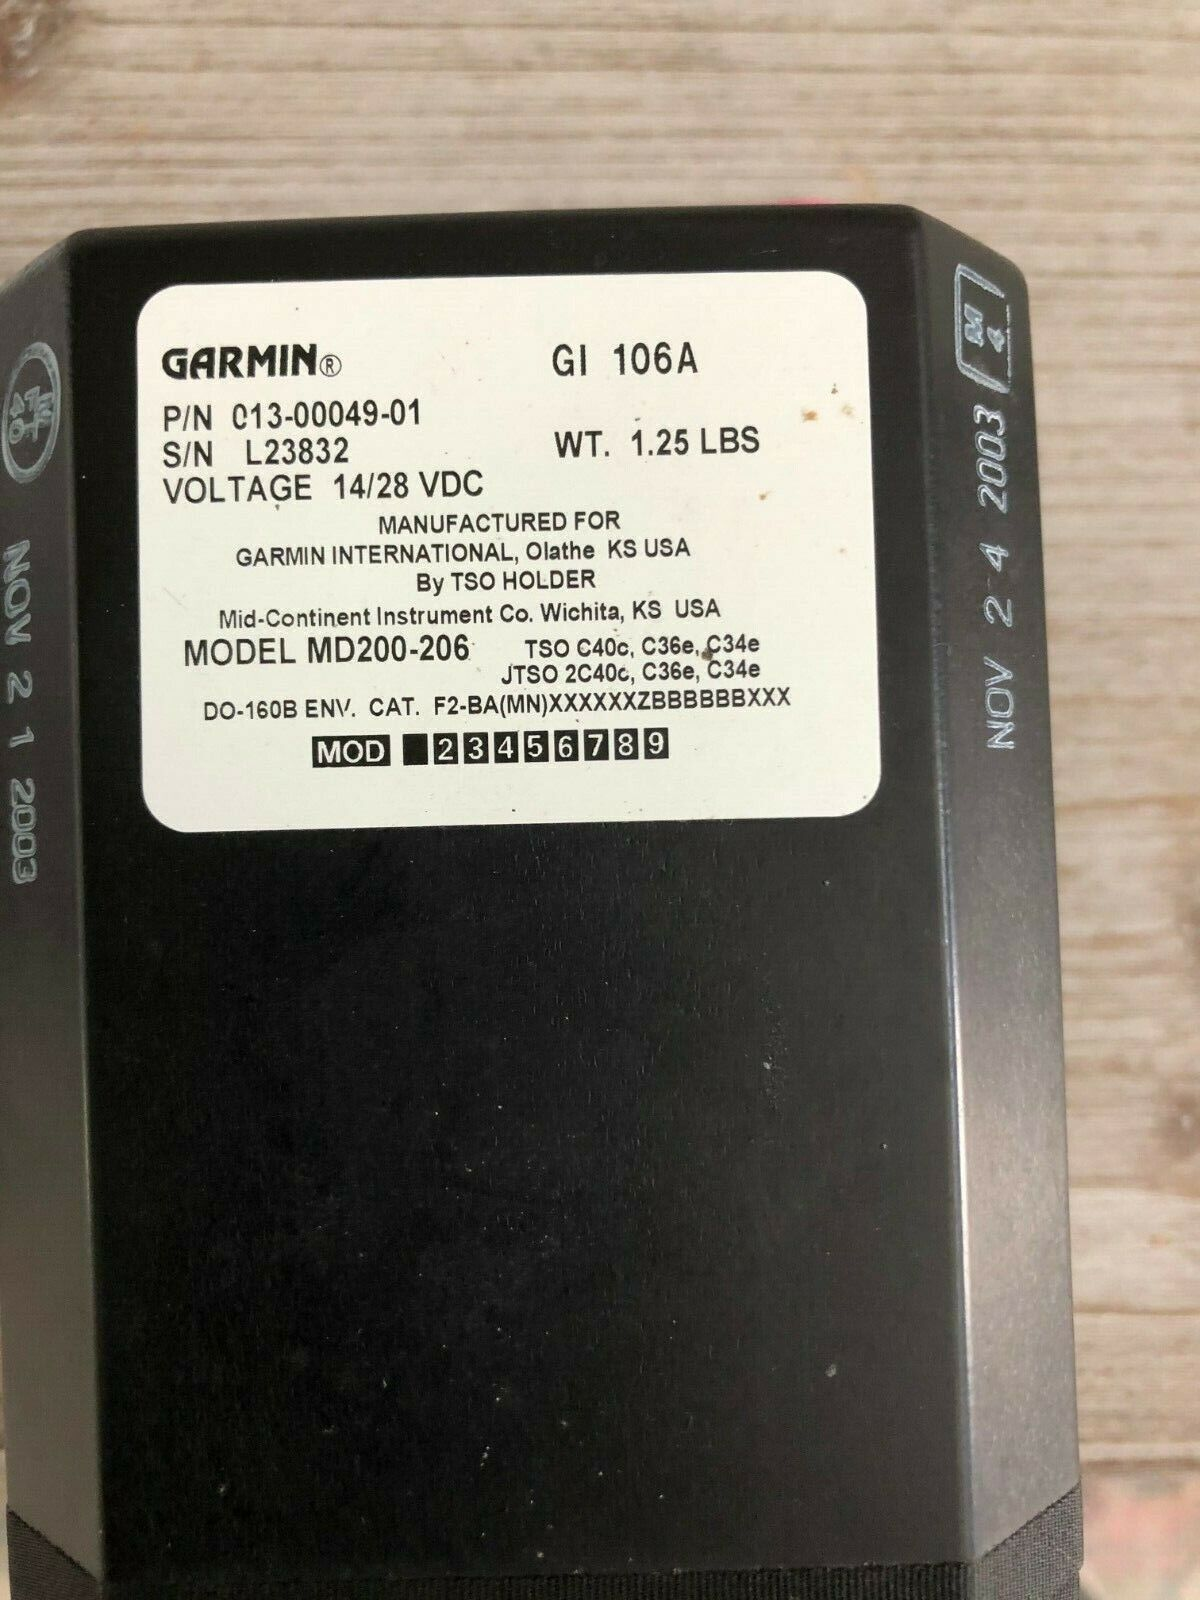 GARMIN GI-106A VOR/LOC & G/S CDI INDICATOR  P/N 013-00049-01 WITH FAA FORM 8130